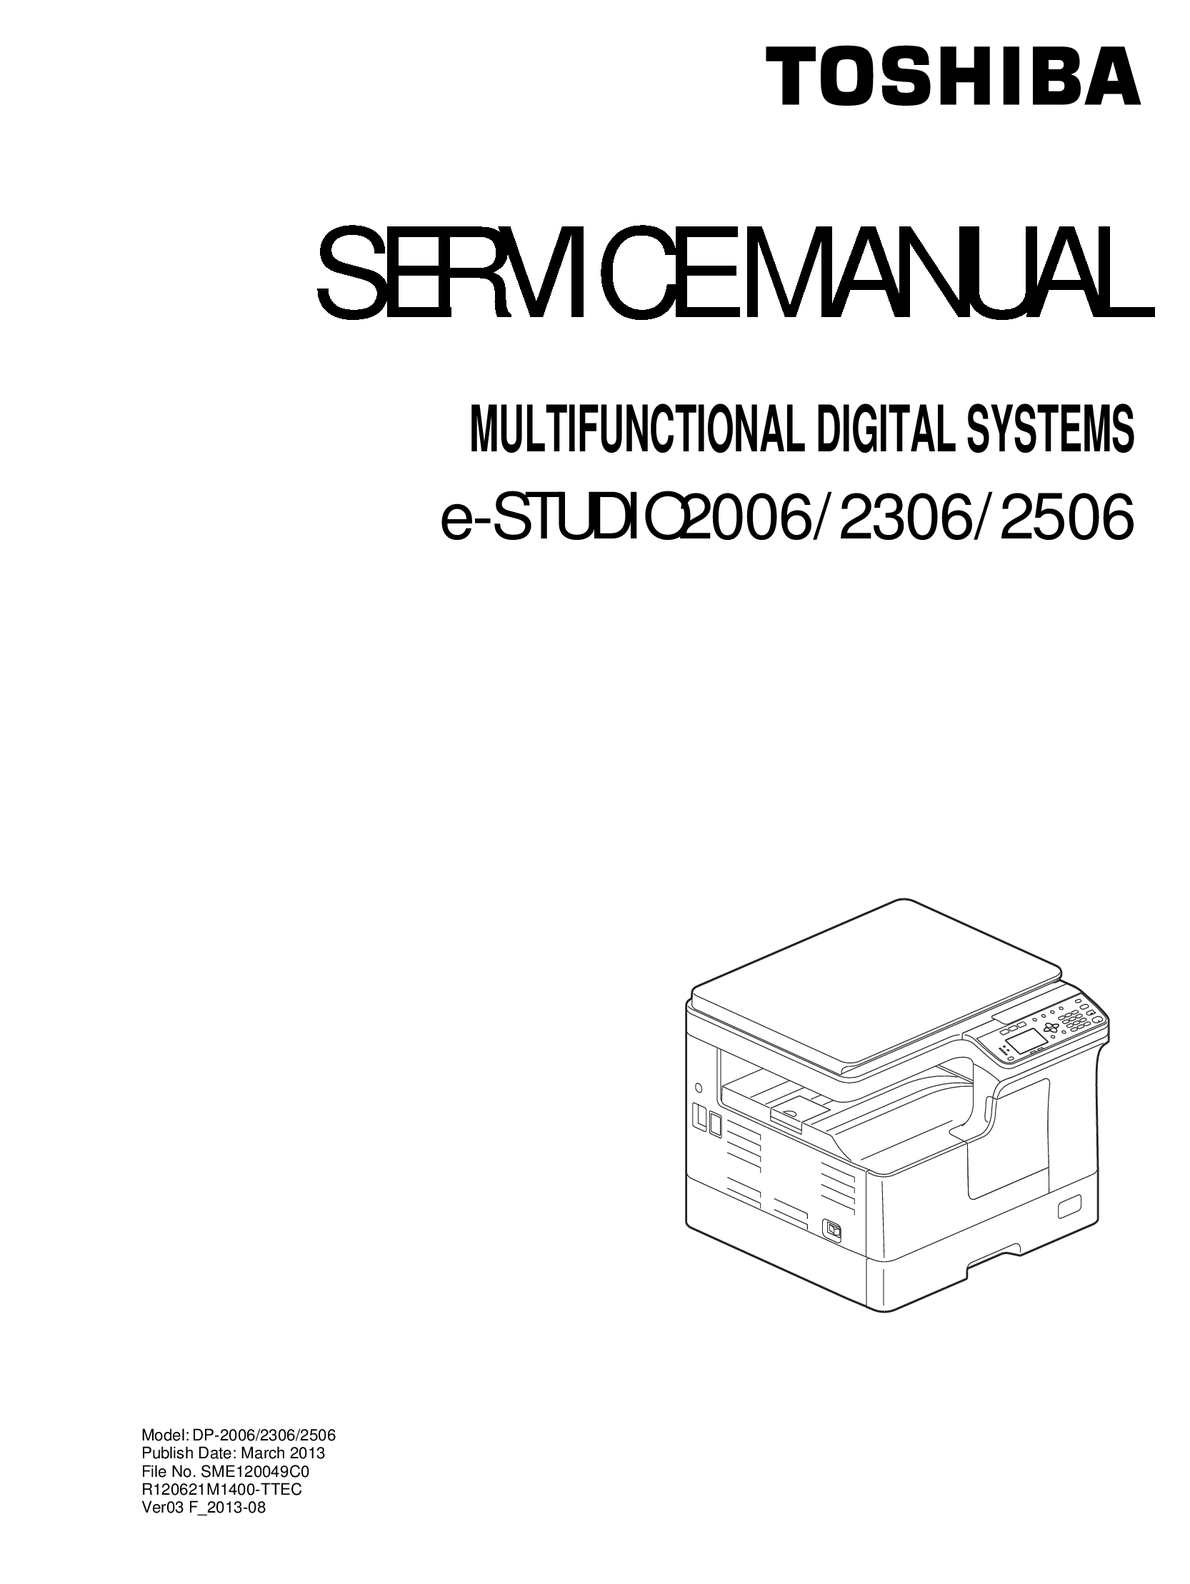 Owner's Manuals Service Manuals - Kawasaki Vehicles